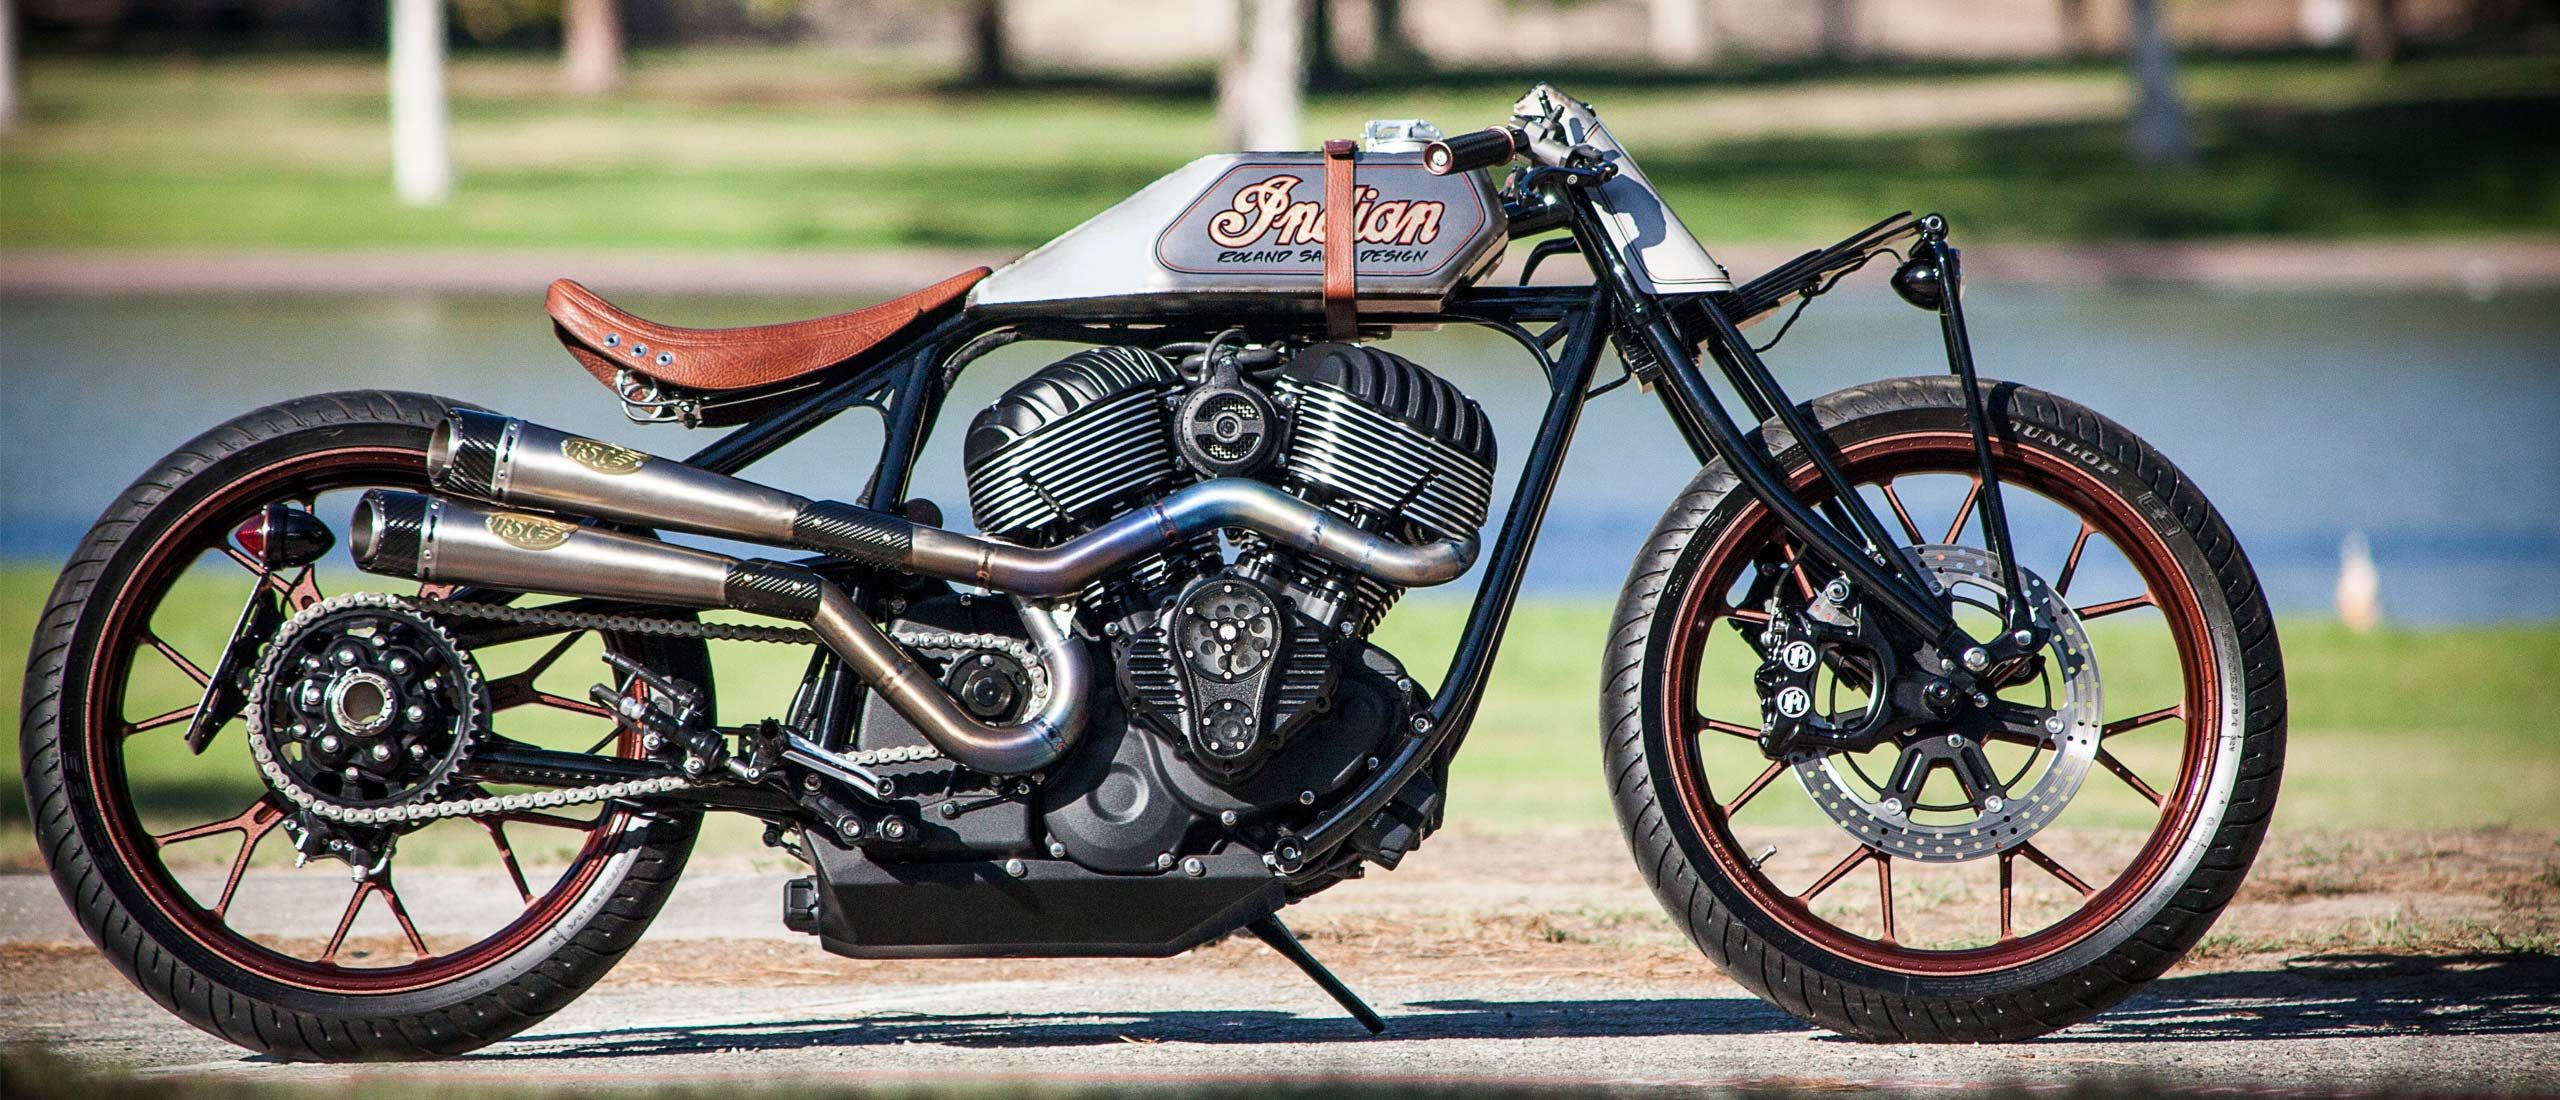 5c9278fb9492 RSD Custom Indian - Blog - Motorcycle Parts and Riding Gear - Roland Sands  Design